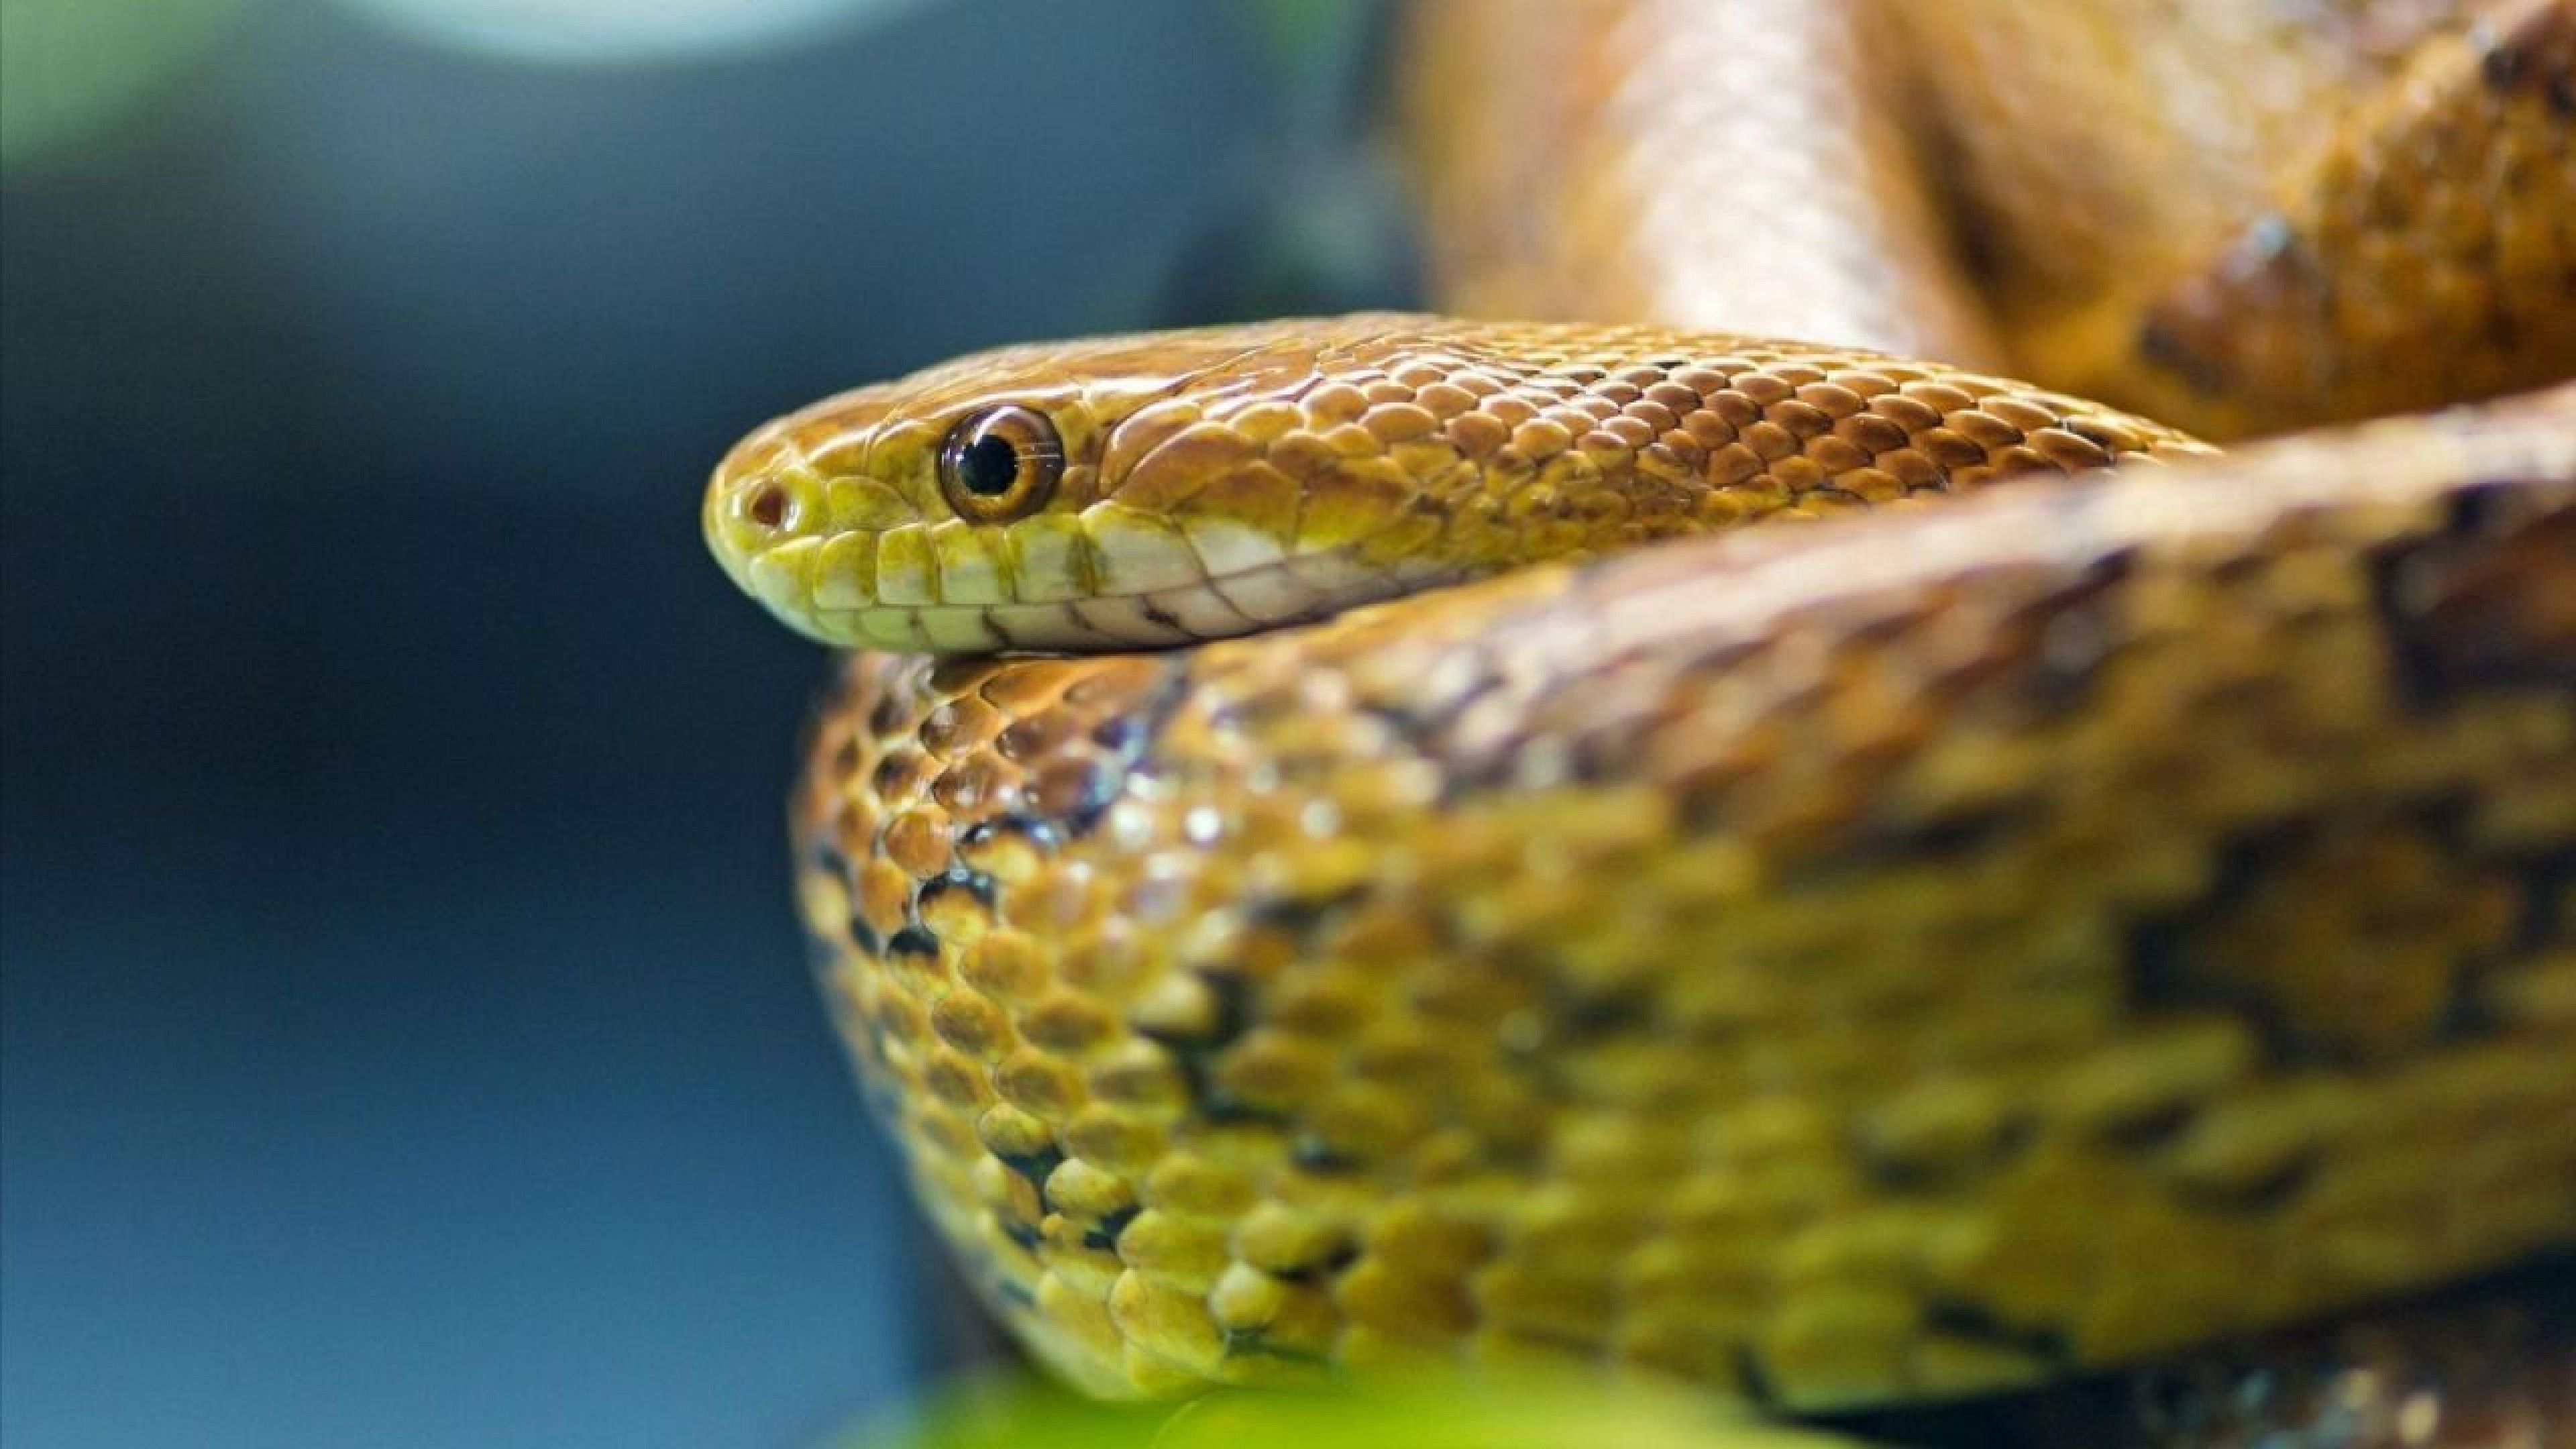 wallpapers green anaconda snake 4k